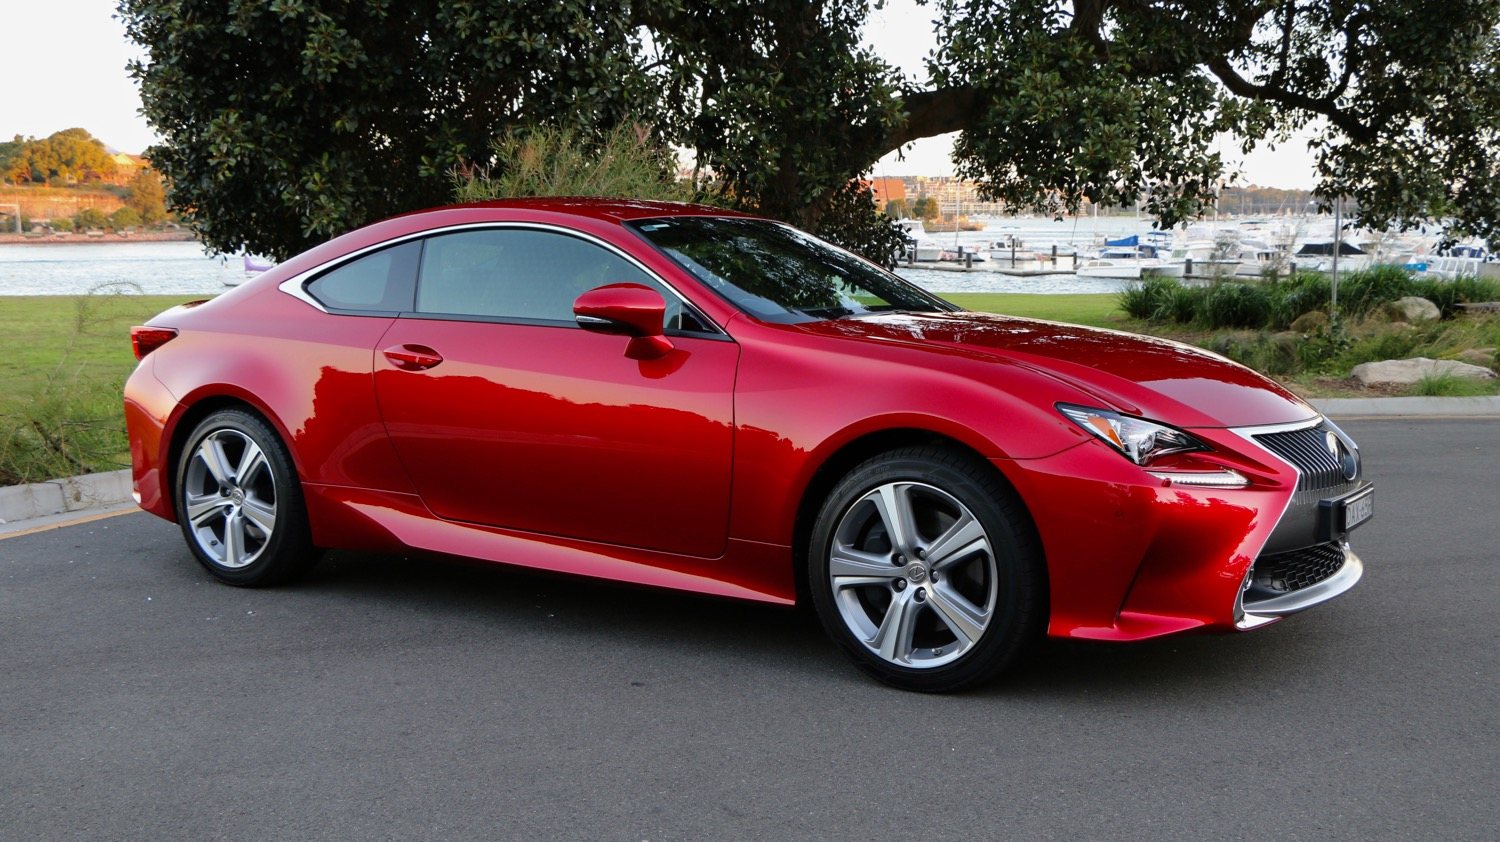 2016 lexus rc 200t review chasing cars. Black Bedroom Furniture Sets. Home Design Ideas